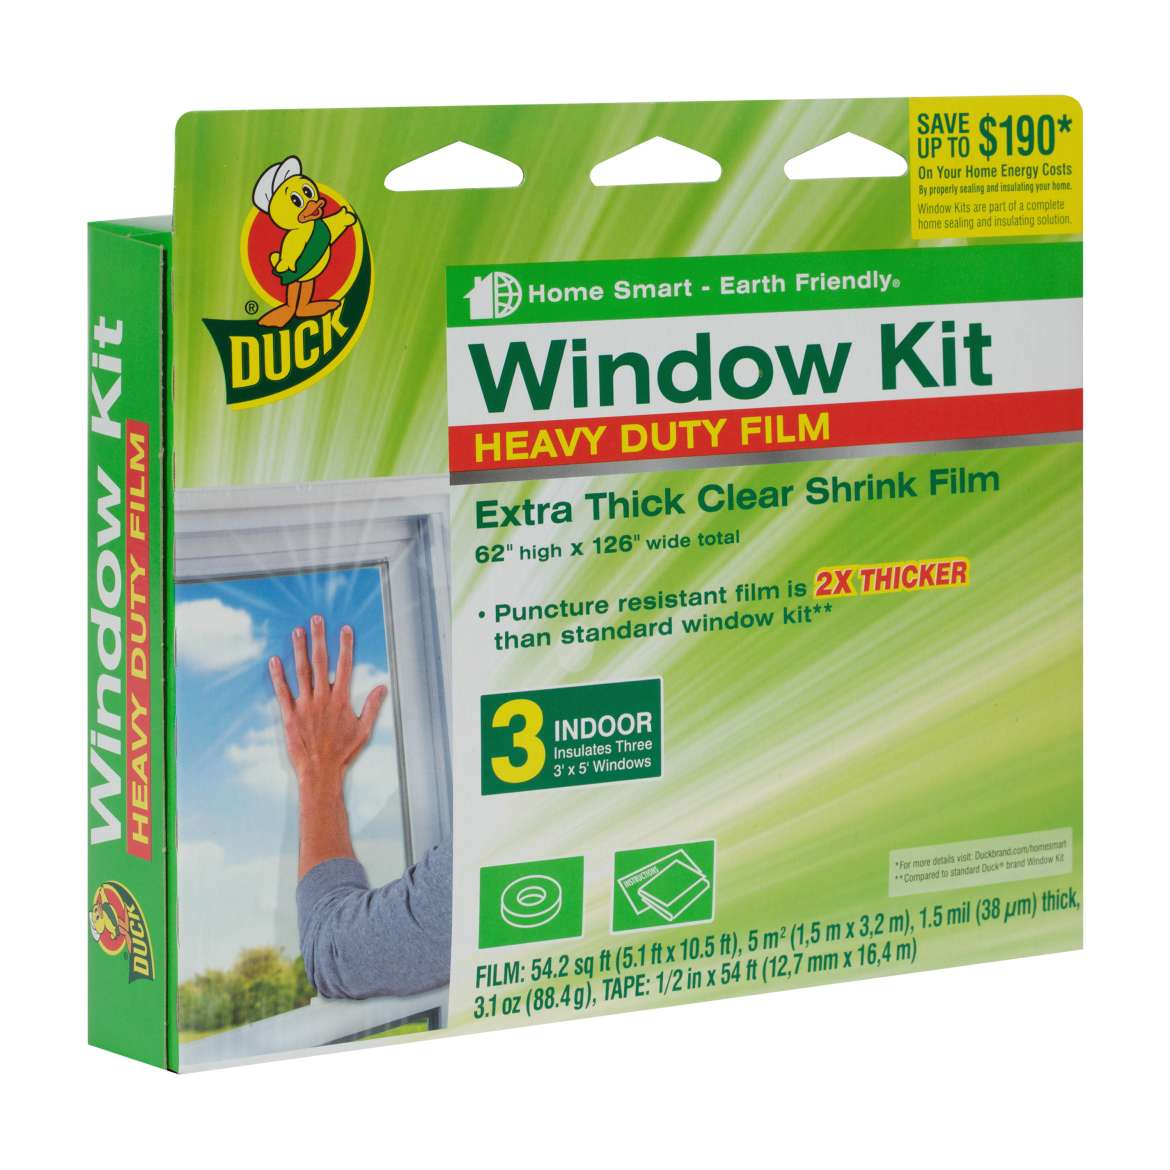 Duck MAX Heavy-Duty Shrink Film Window Kit, Indoor, 3 Pack